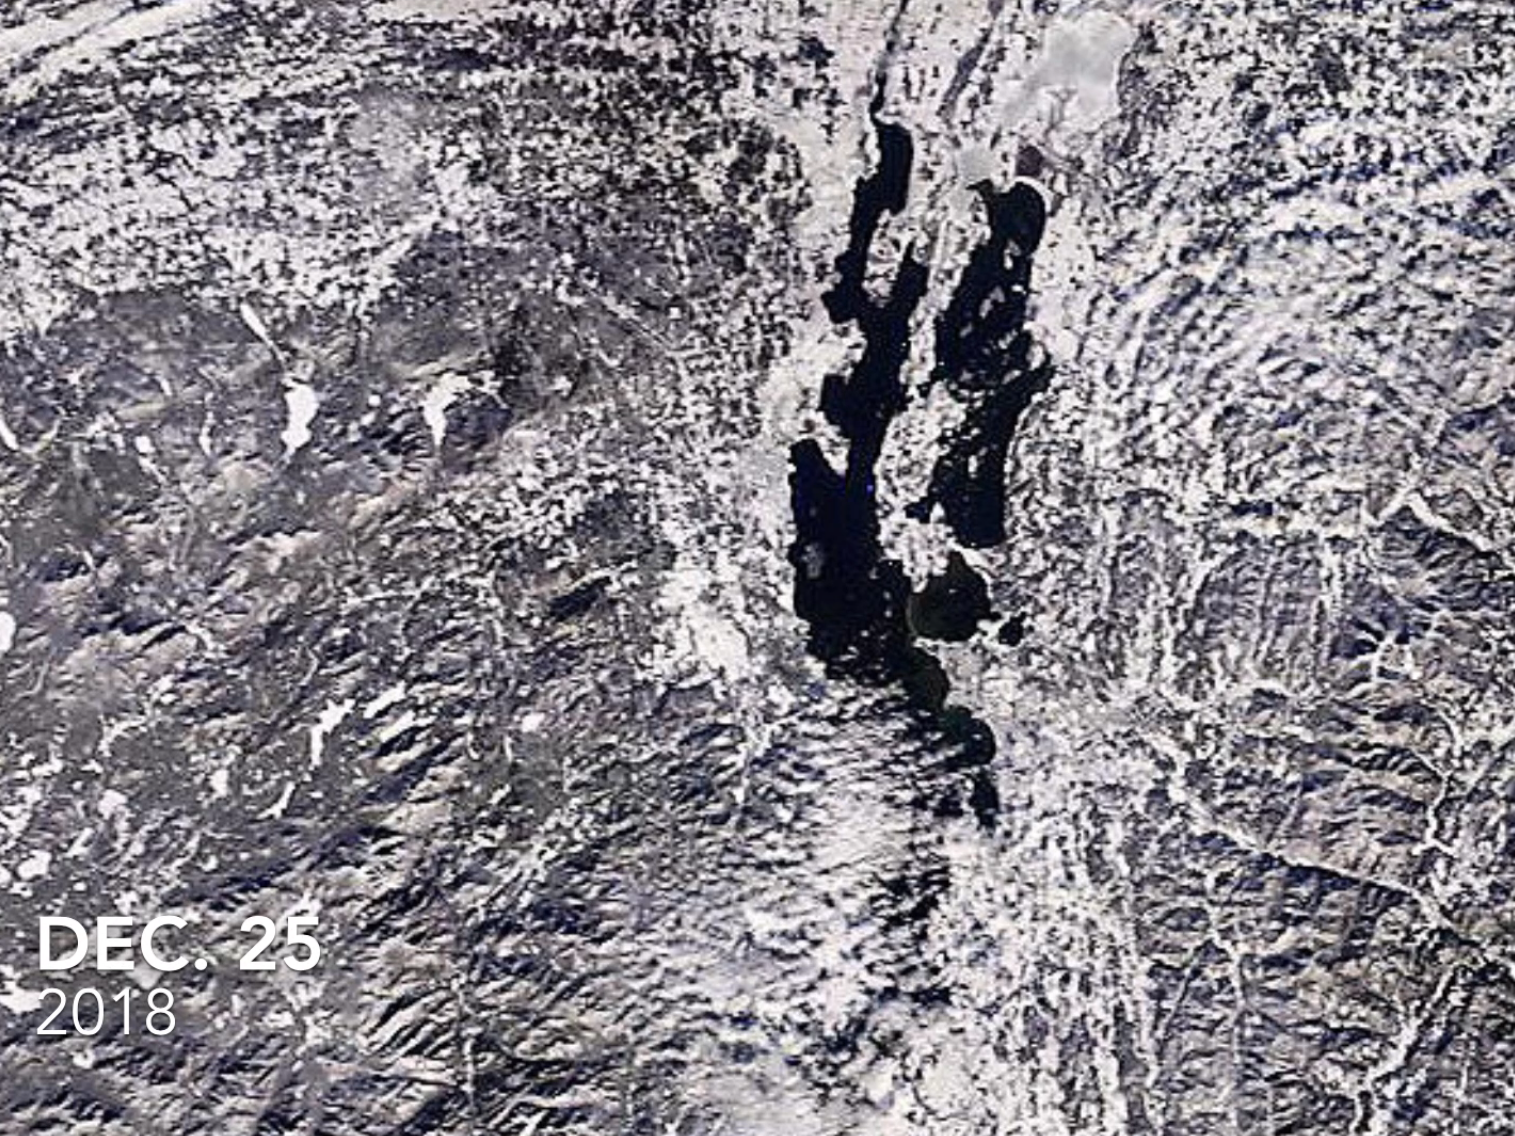 Lake Champlain, as photographed by a NASA satellite on Dec. 25, 2018.